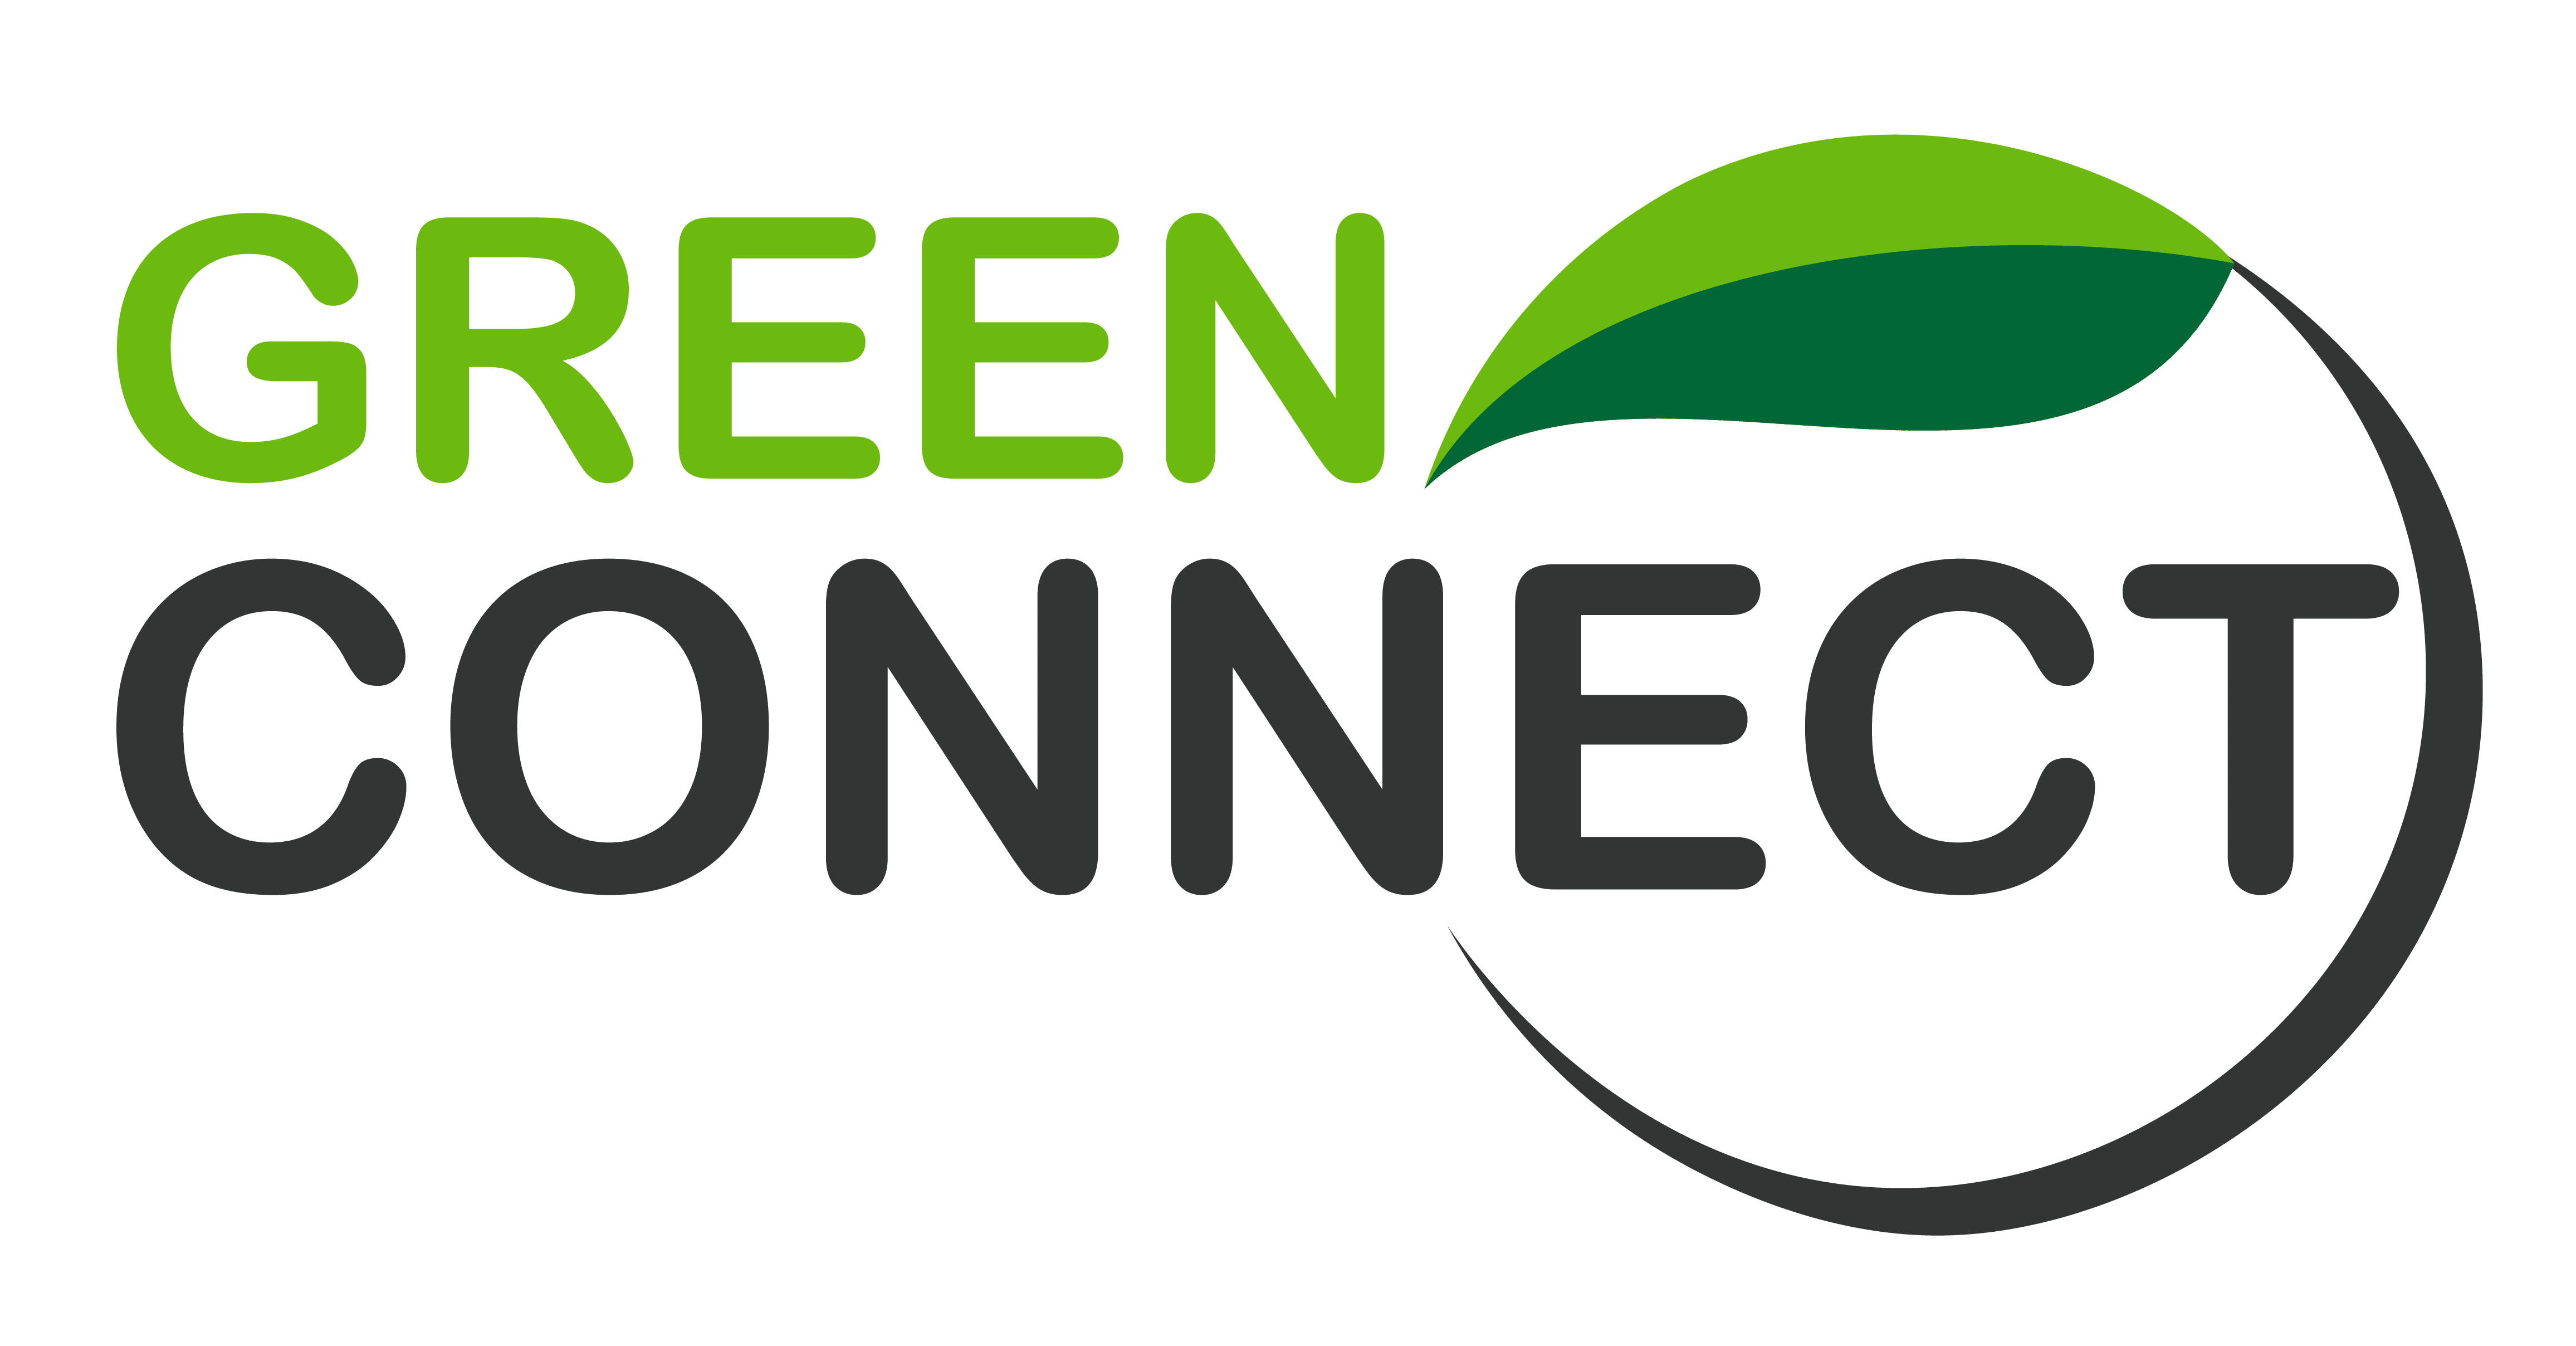 Green connect